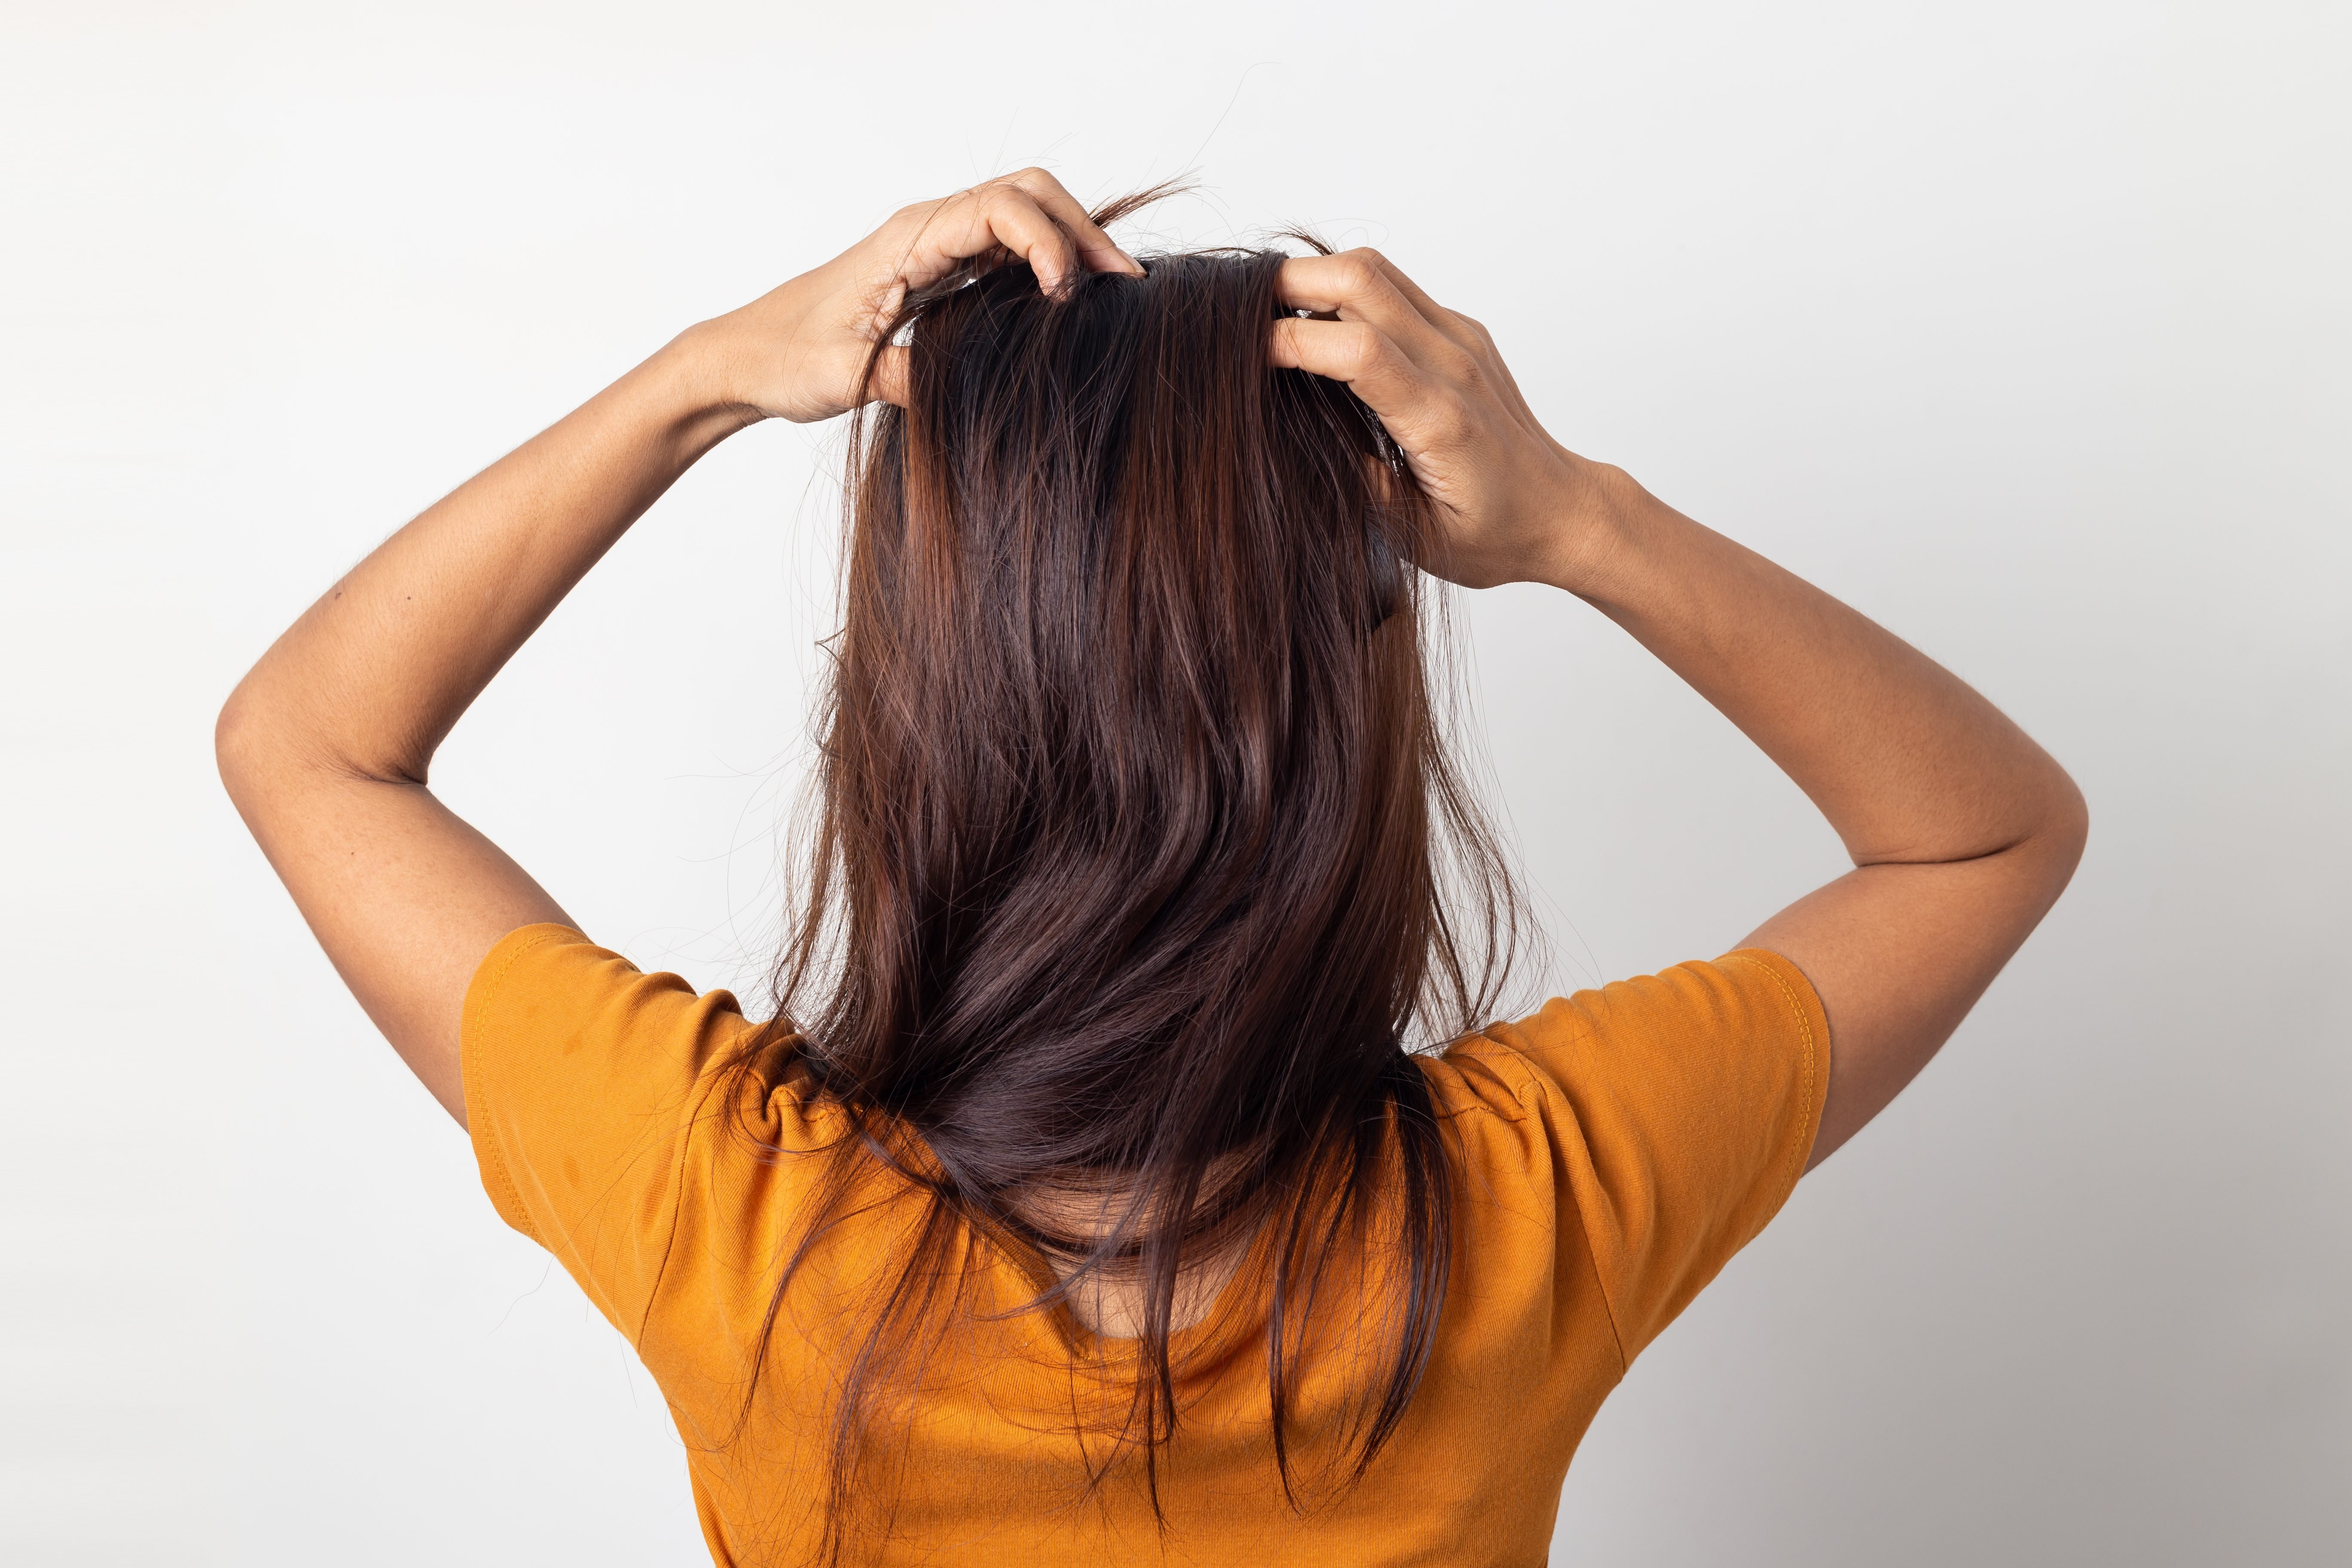 Women itching scalp itchy his hair and was massage her hair on a white background,Haircare concept